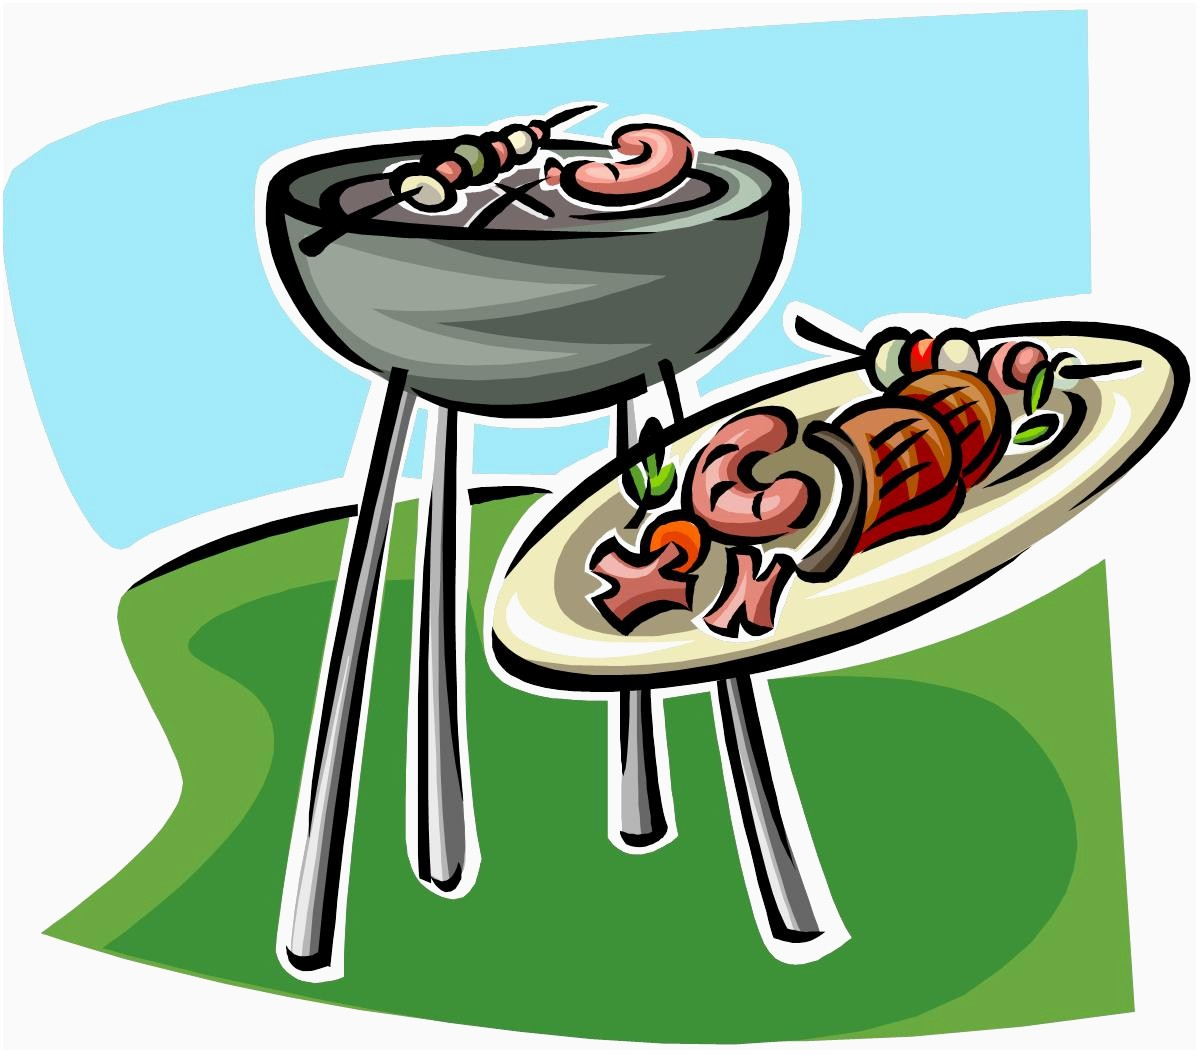 Cookout clip art images. Grilling clipart family first